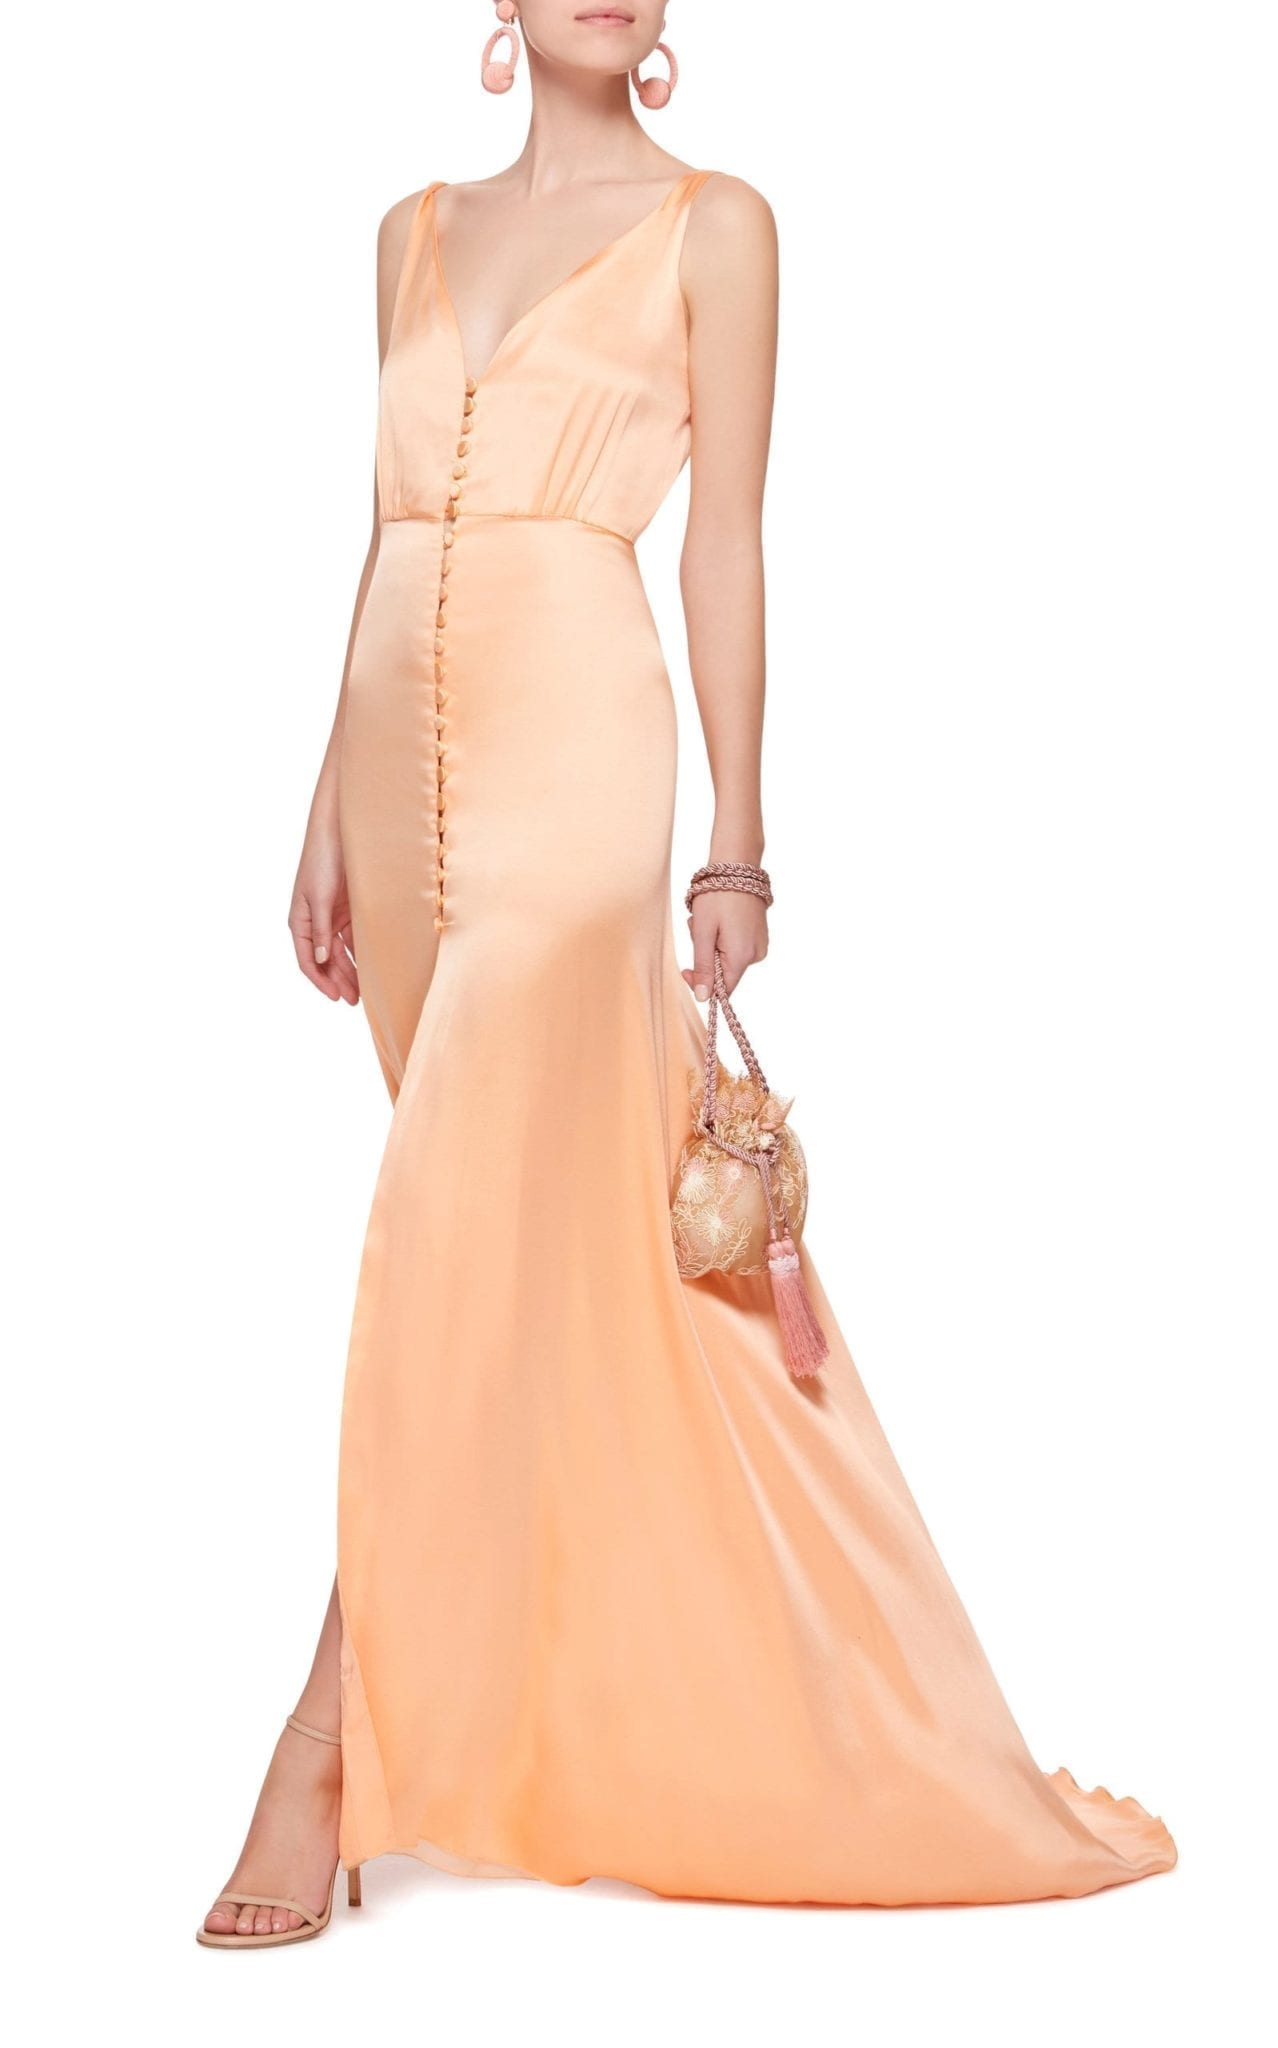 LUISA BECCARIA Button Front Satin Camisole Pink Dress